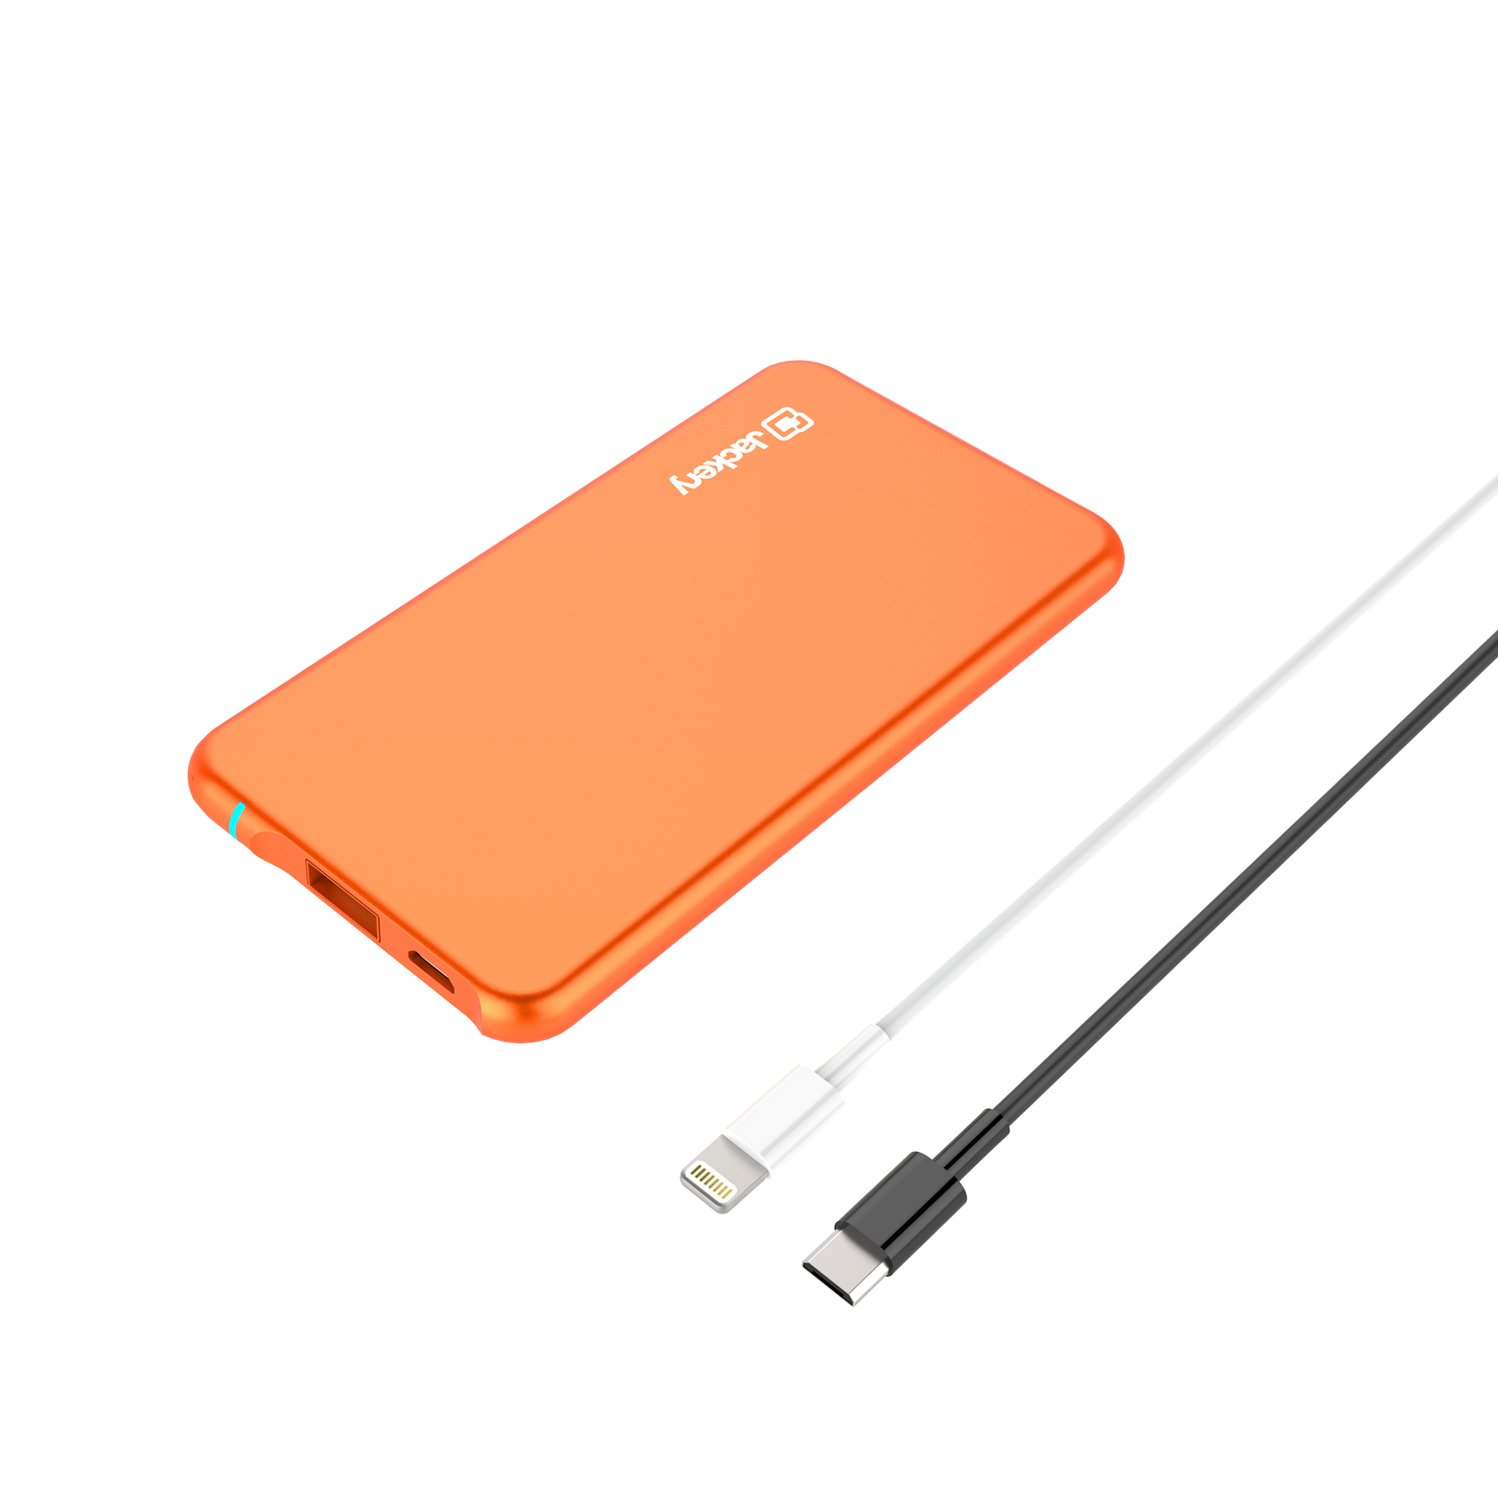 Jackery Air 6 - The Thinnest Portable Battery Charger & External Battery Pack - Designed for Apple iPhones and iPads - 3000 mAh (Apple MFI Certified Lightning Cable Included)